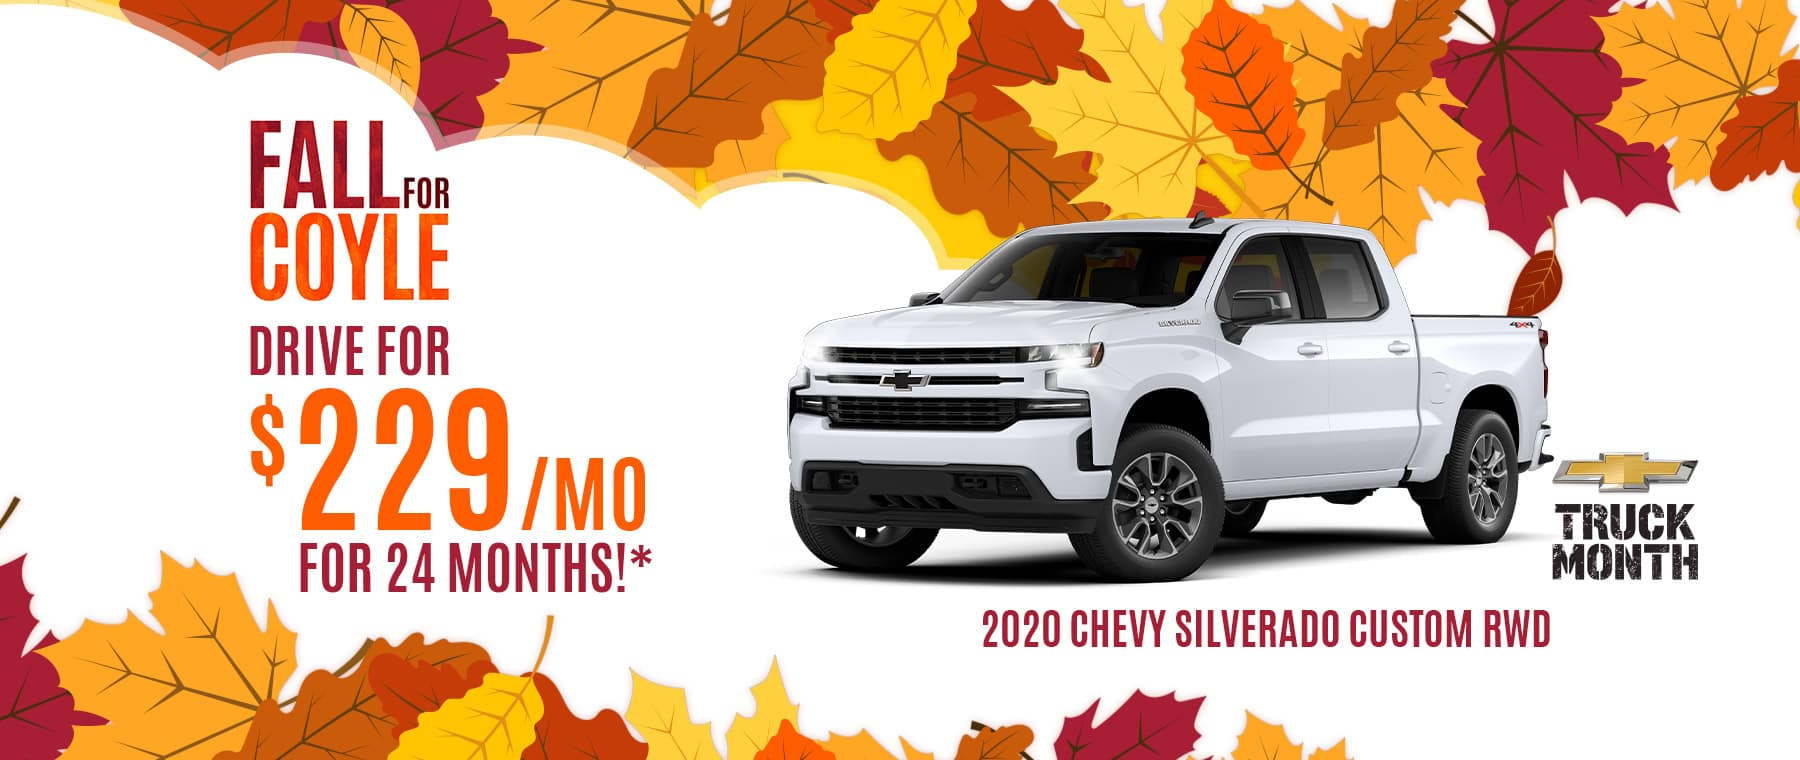 Save on a new Chevy Silverado near Sellersburg, Indiana